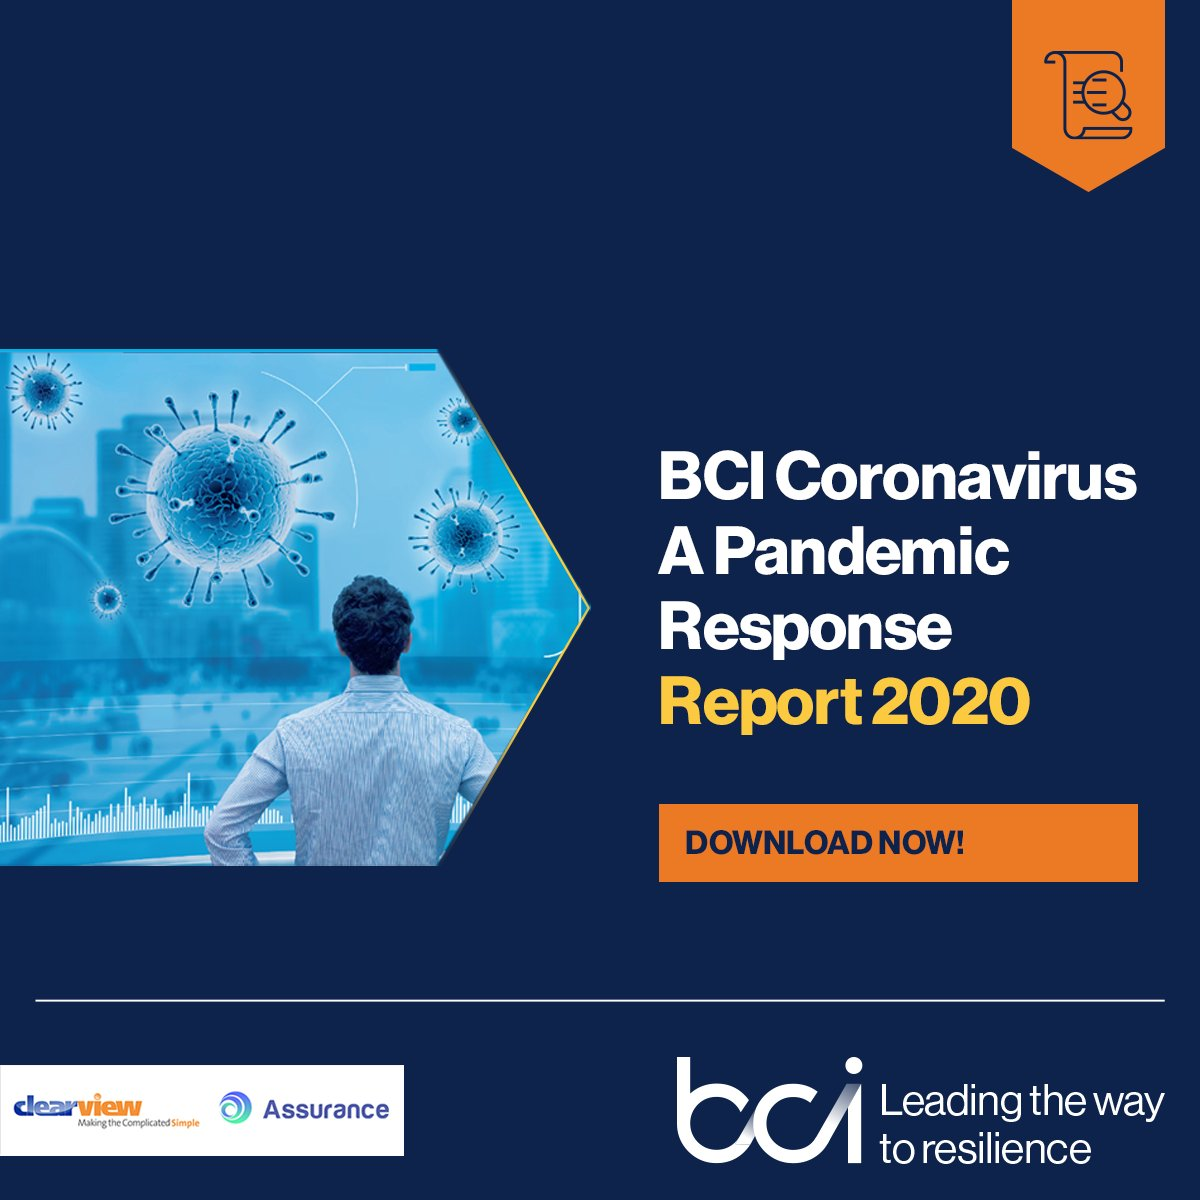 #Download our comprehensive report on the disruptive impacts of #COVID19 on organizations & the #BusinessContinuity and #resilience profession. Follow the link to get your copy:  https://t.co/DkgNWV8eUo  Sponsored by @ClearViewBCM & @AssuranceBCM https://t.co/ow61LUpWPJ